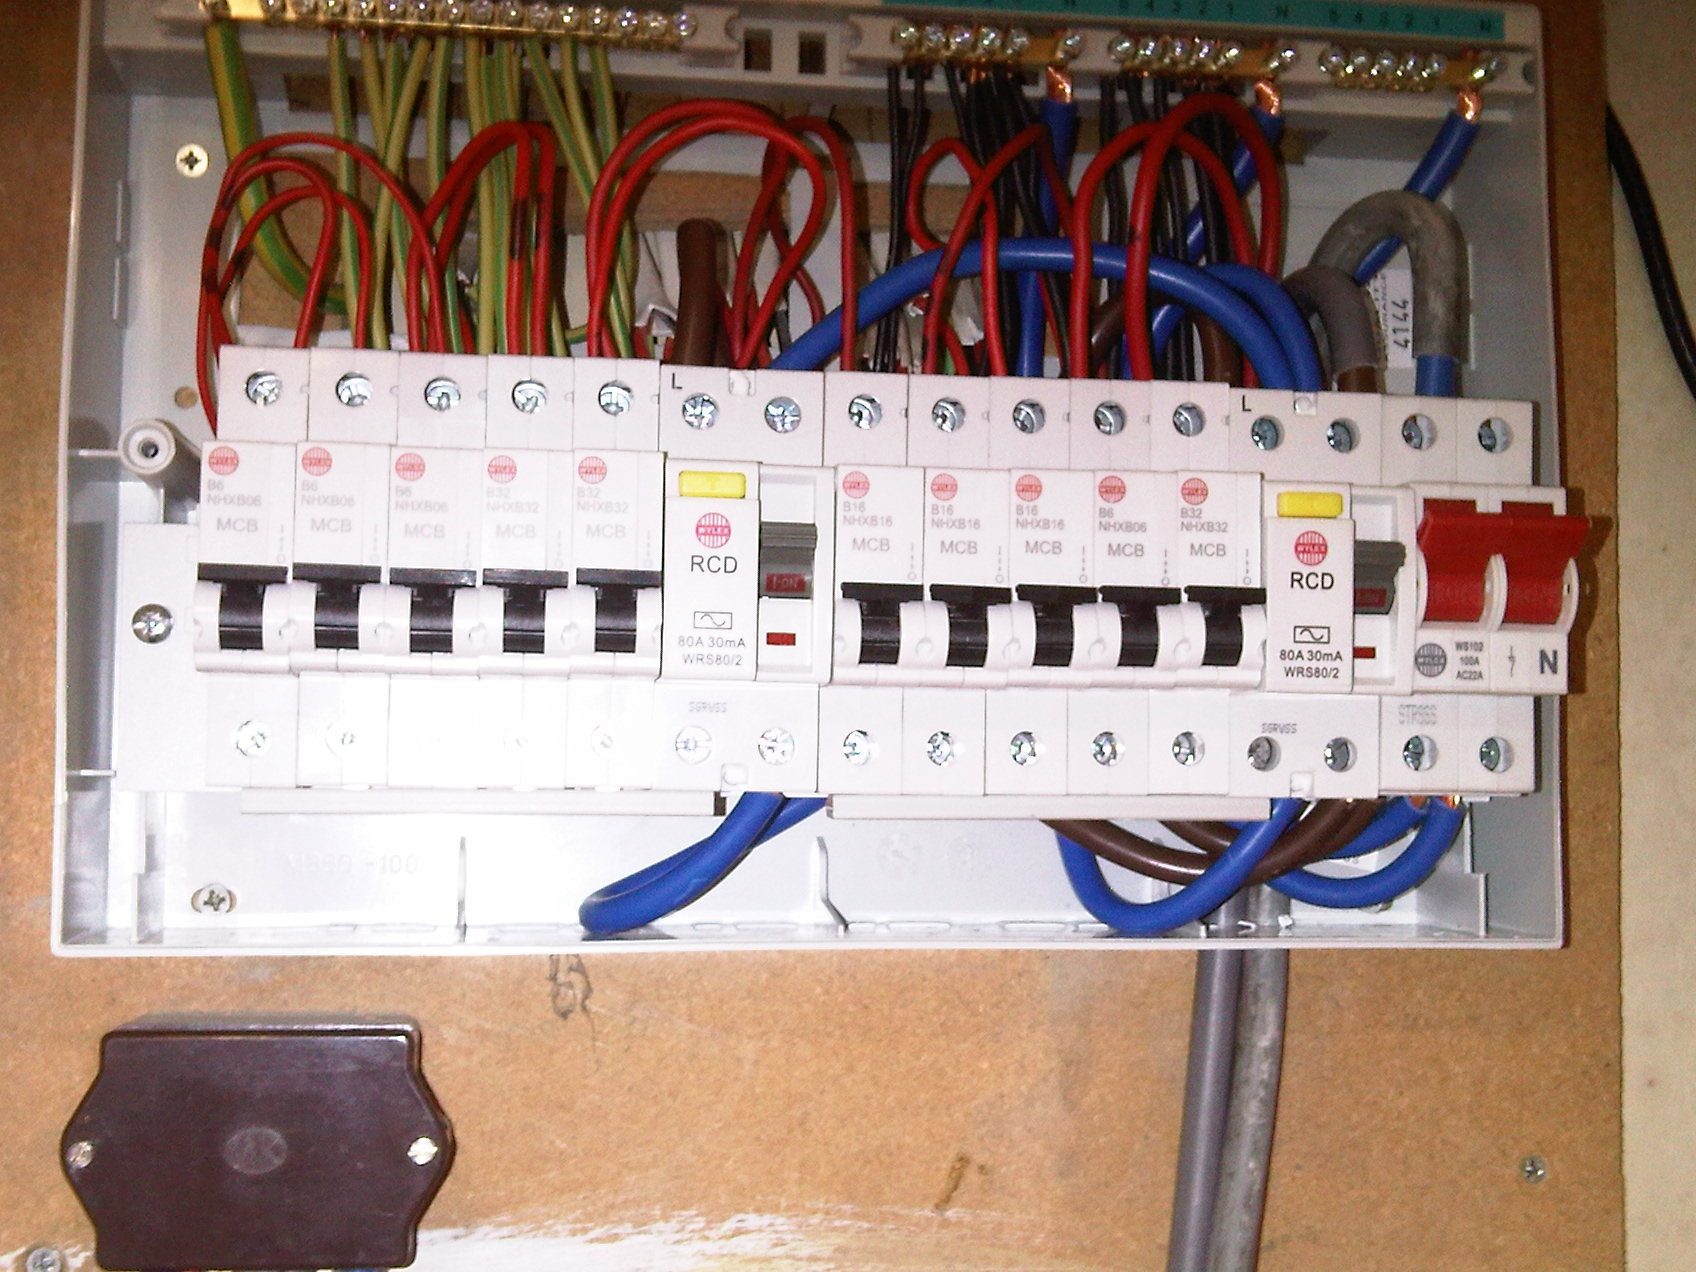 hight resolution of fuse distribution box main switch wiring diagram mega fuse switch box wiring diagram inside fuse distribution